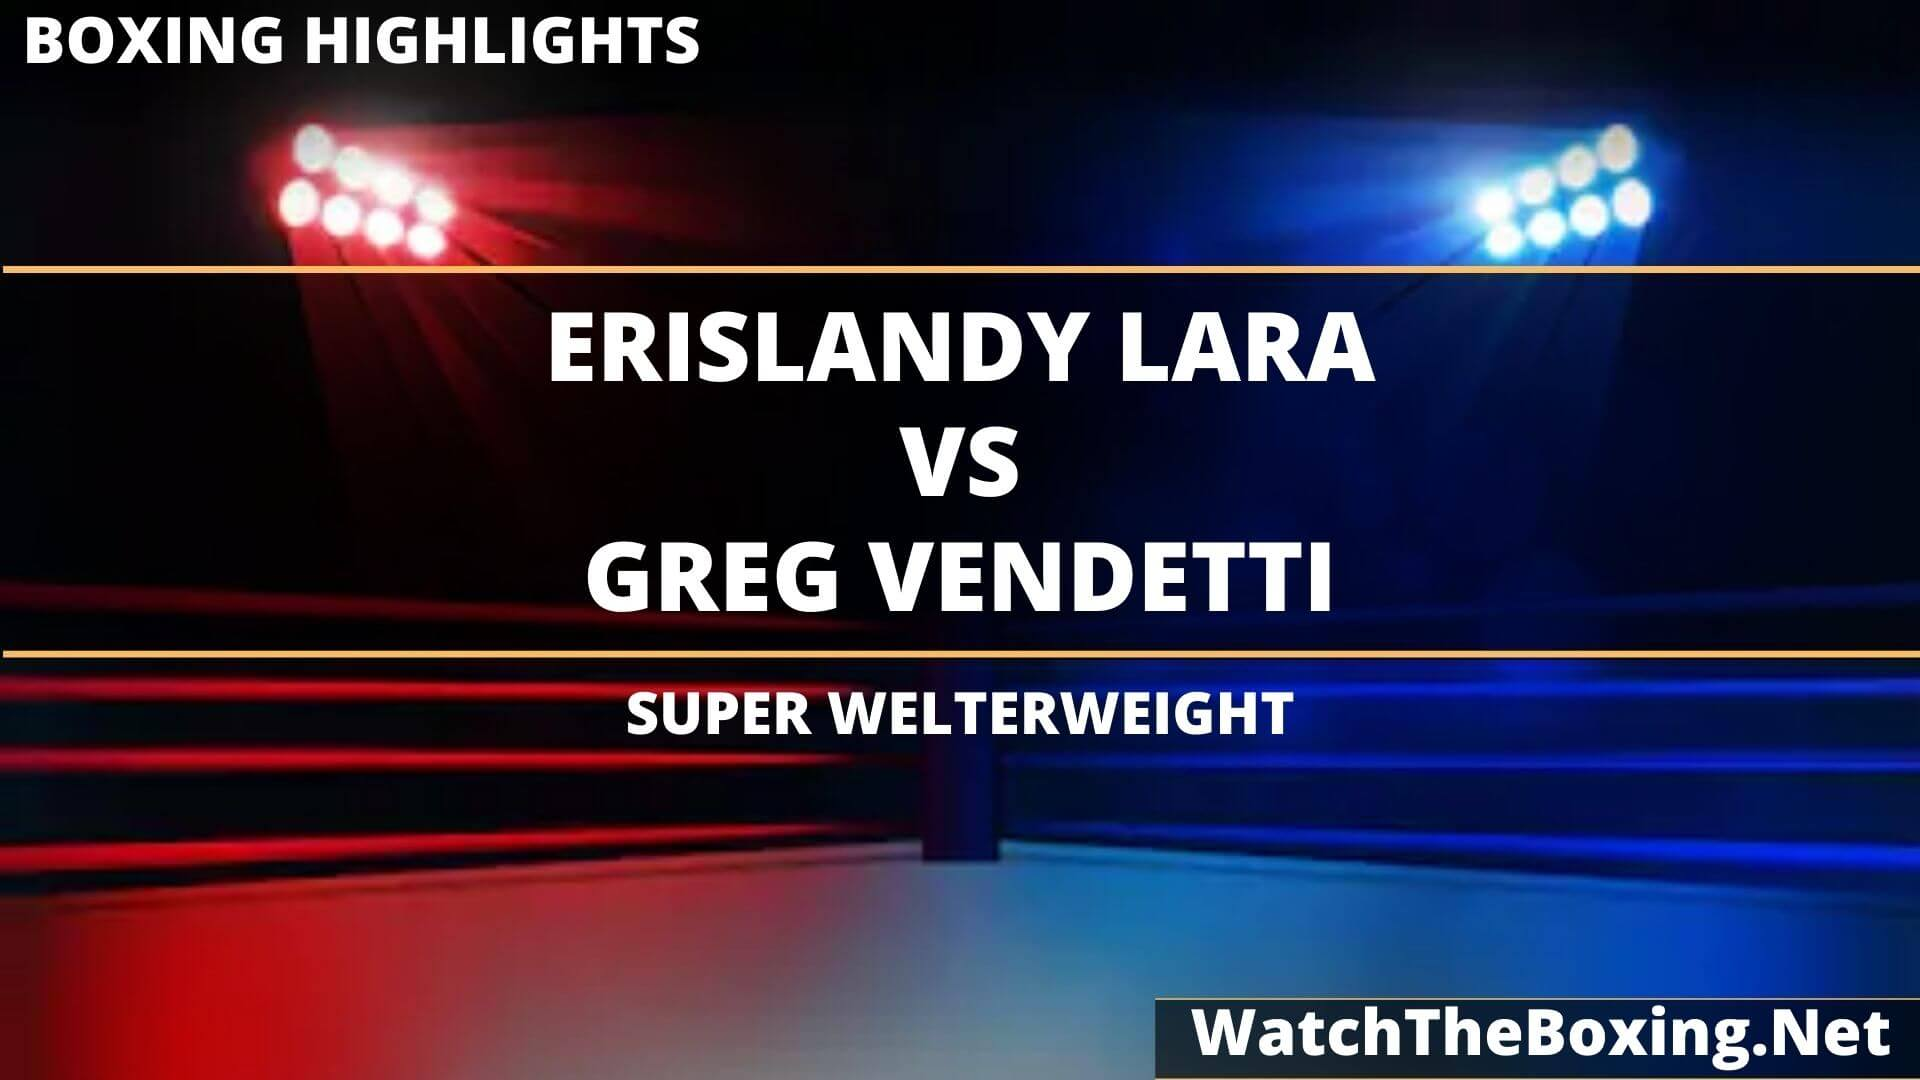 Erislandy Lara Vs Greg Vendetti Highlights 2020